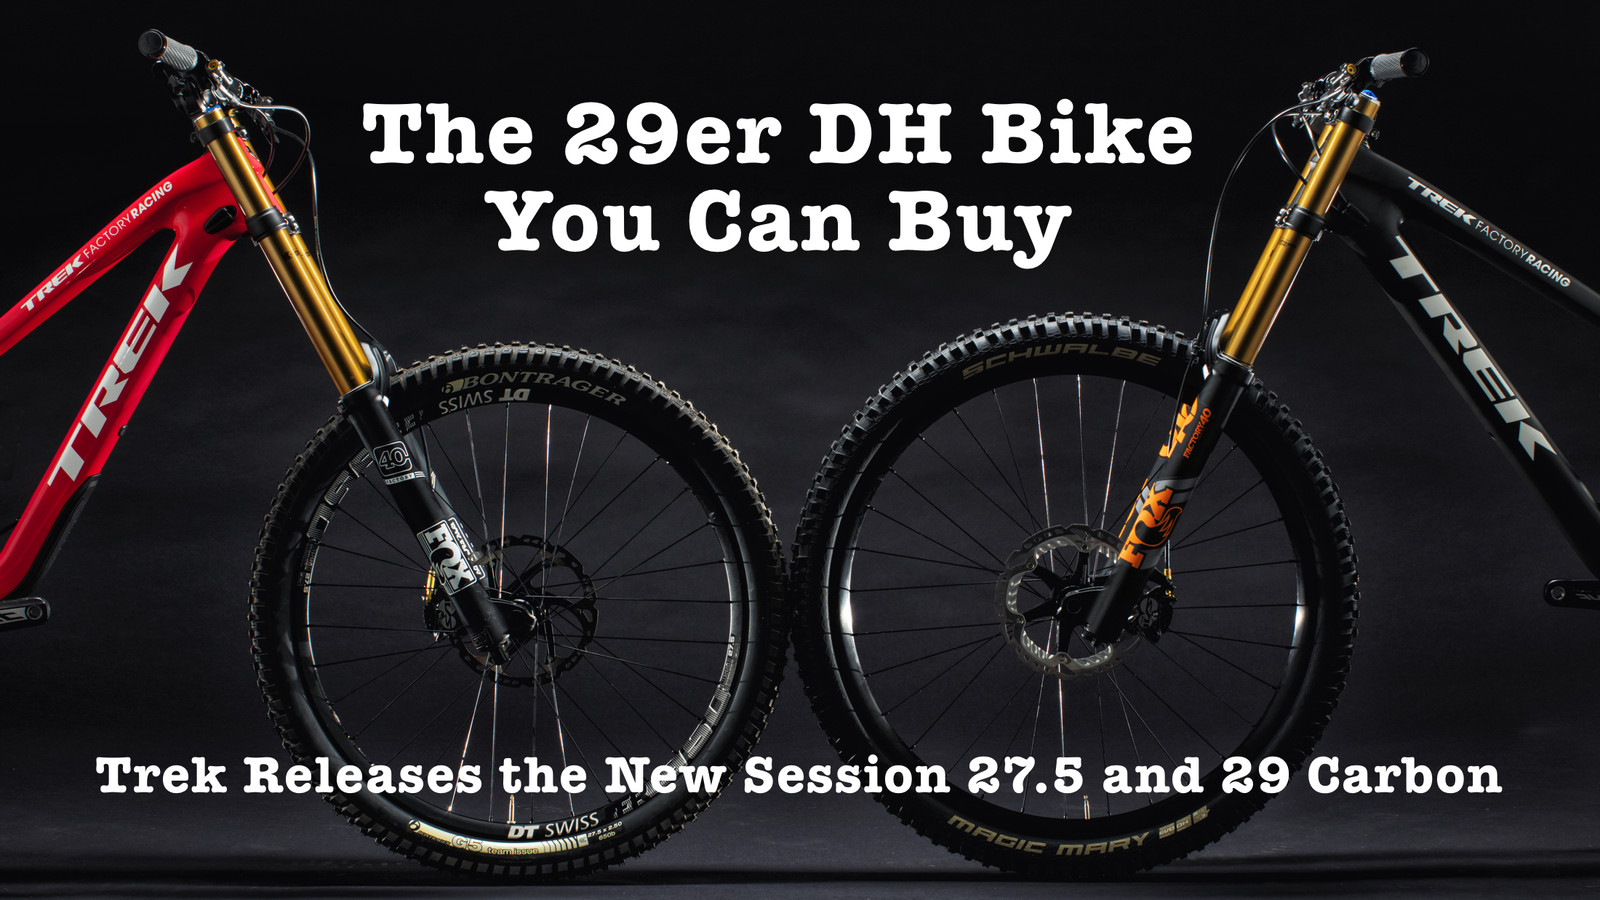 abf3f62beef You Can Have a 29er Downhill Bike - Trek Introduces the New Session 27.5  and Session